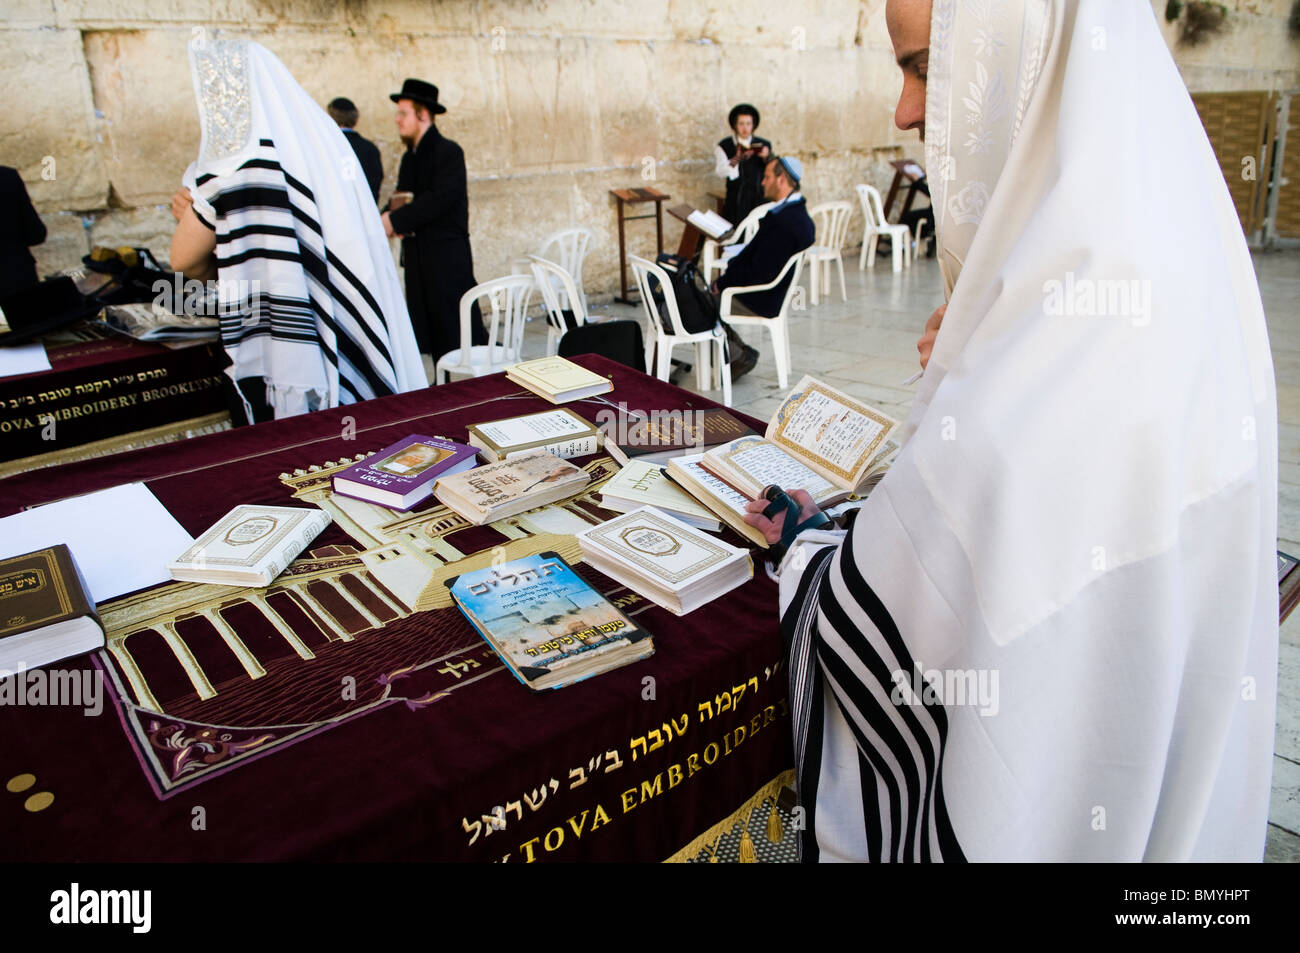 A Jewish man praying at the wailing wall in the old city of Jerusalem. he is wearing a Talit and he has Tfilin on - Stock Image